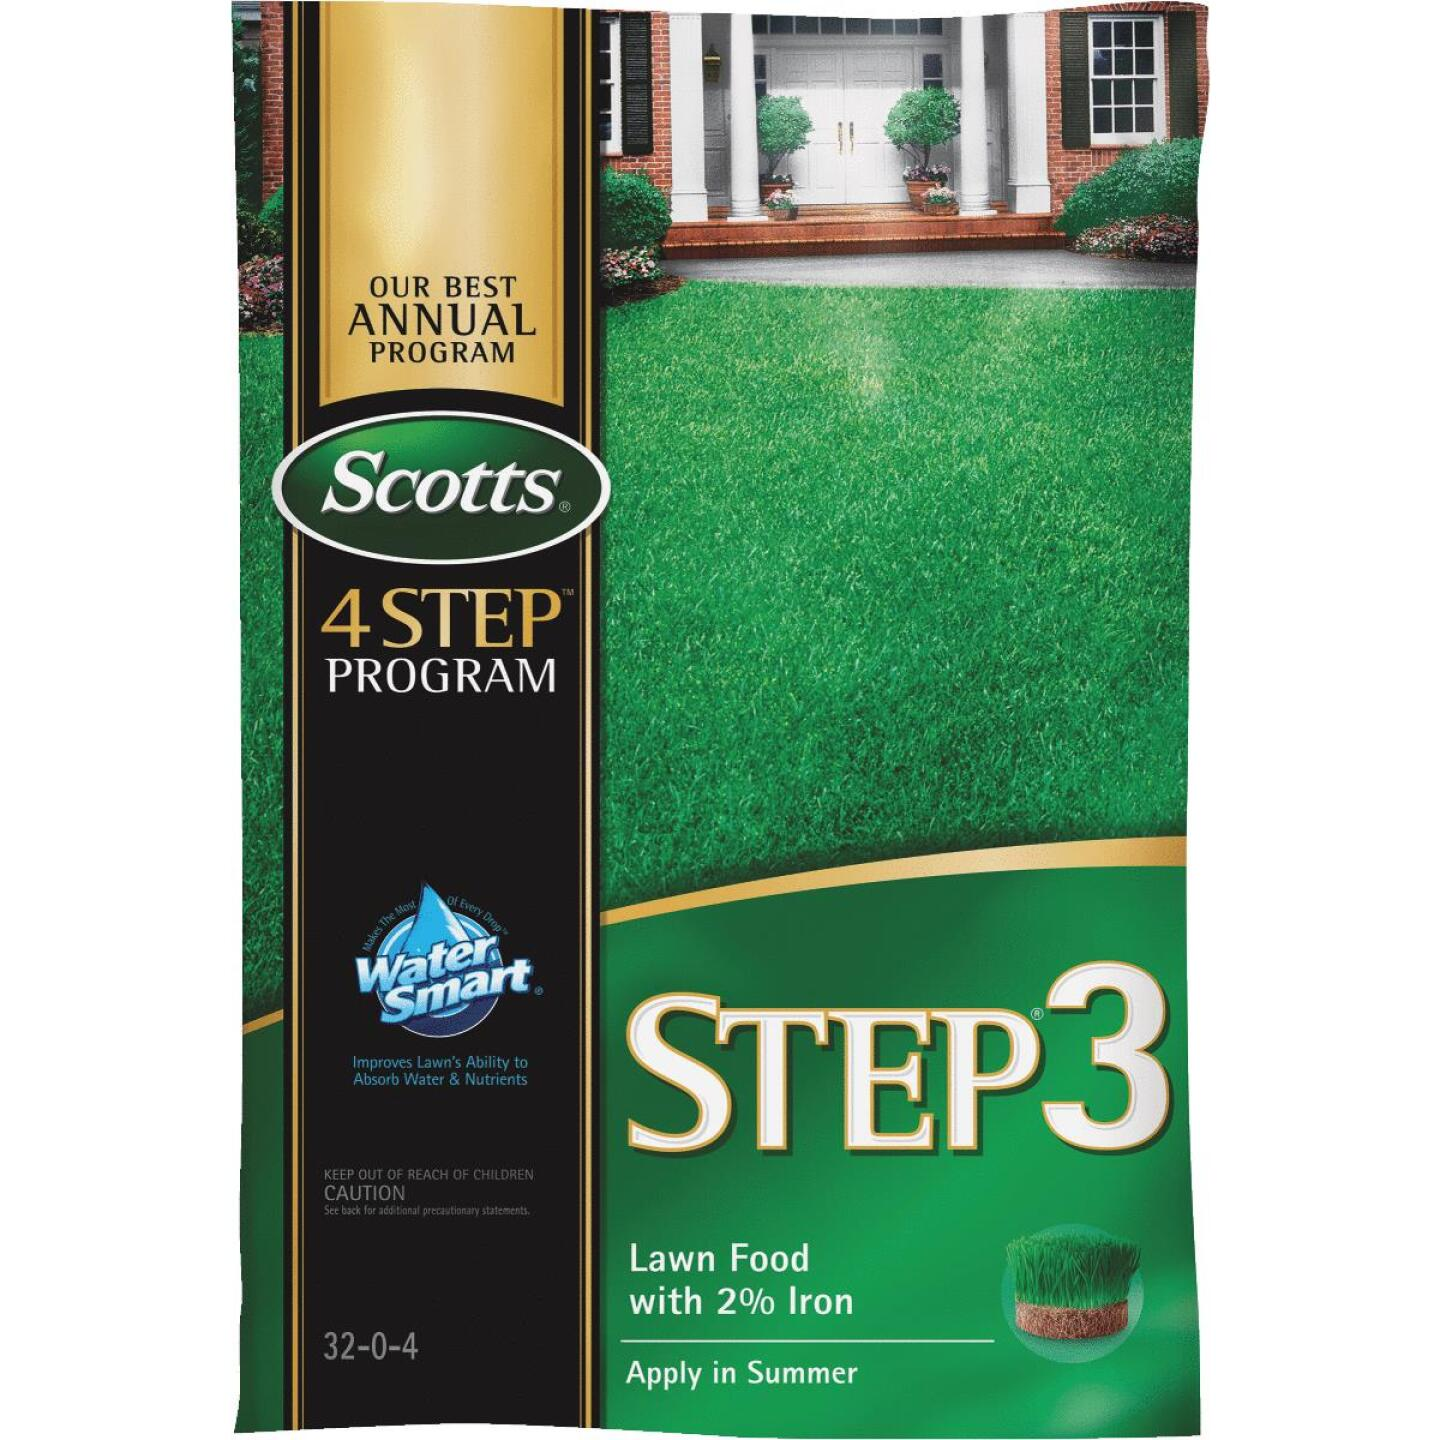 Scotts 4-Step Program Step 3 12.60 Lb. 5000 Sq. Ft. 32-0-4 Lawn Fertilizer with 2% Iron Image 1